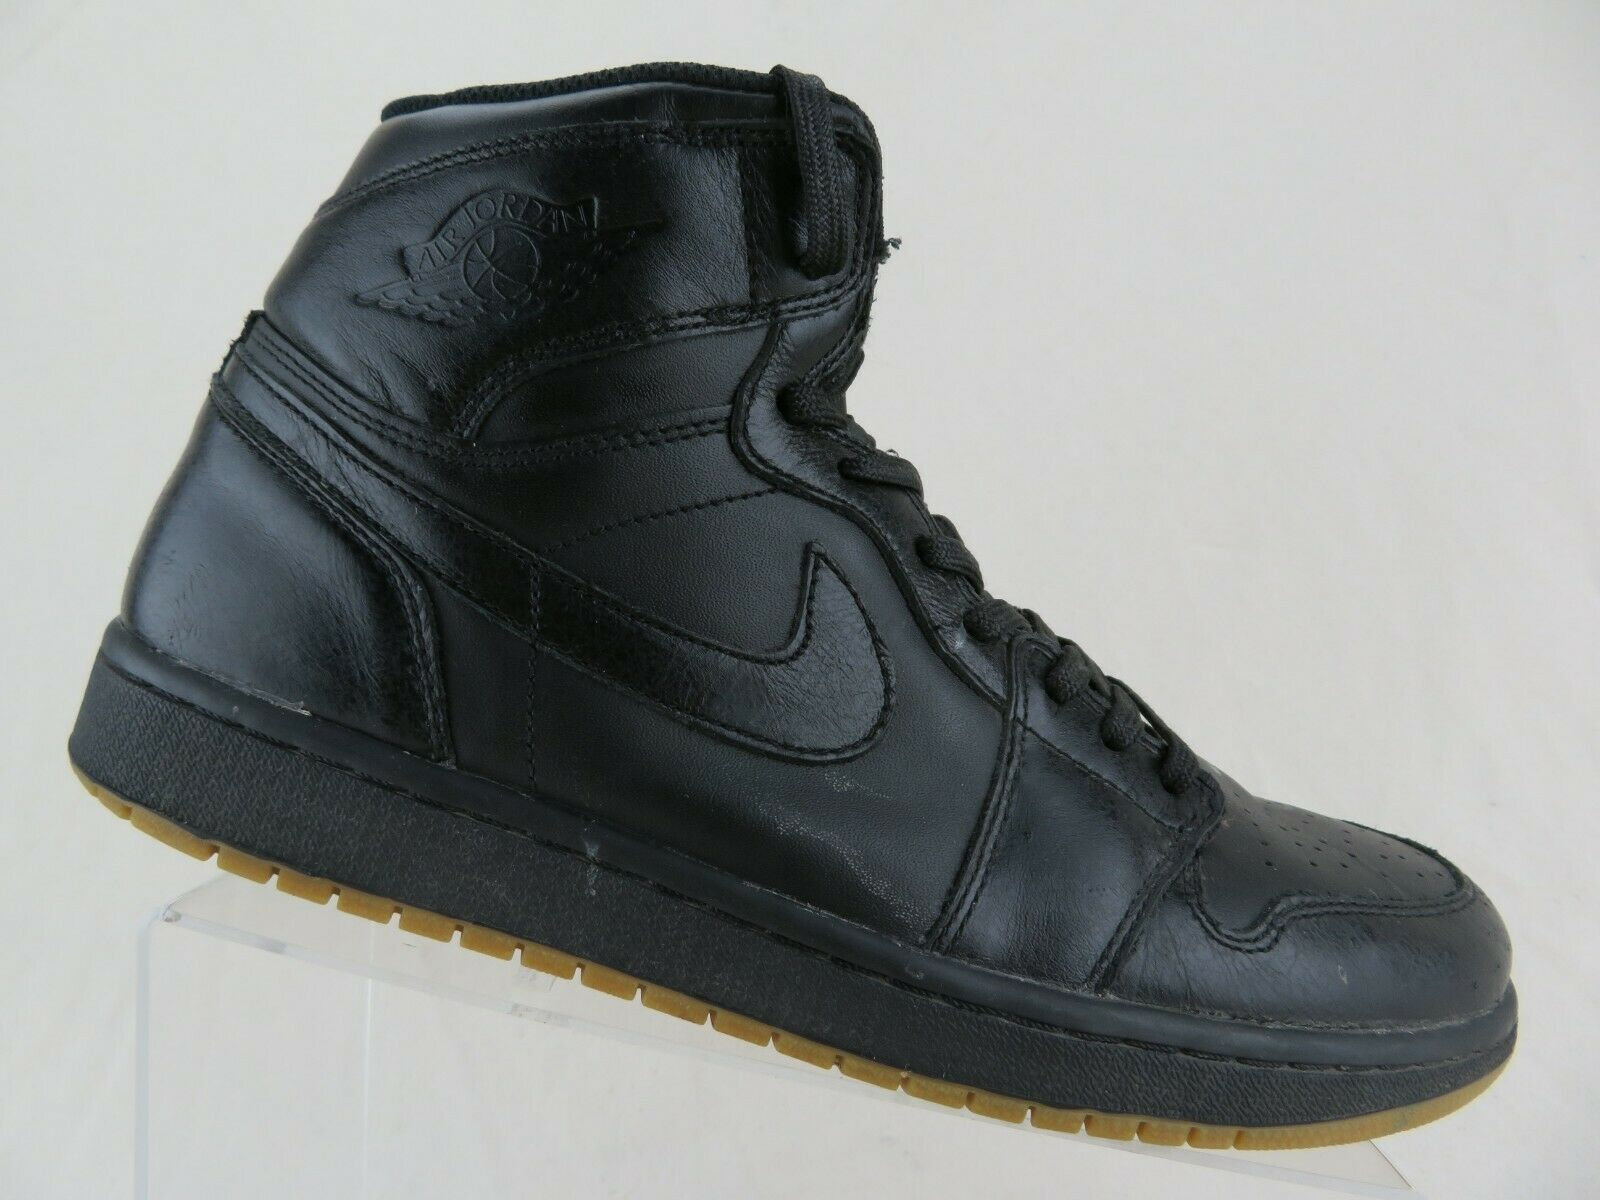 NIKE Air Jordan 1 I Retro High OG Black Gum Sz 11.5 Men Basketball shoes